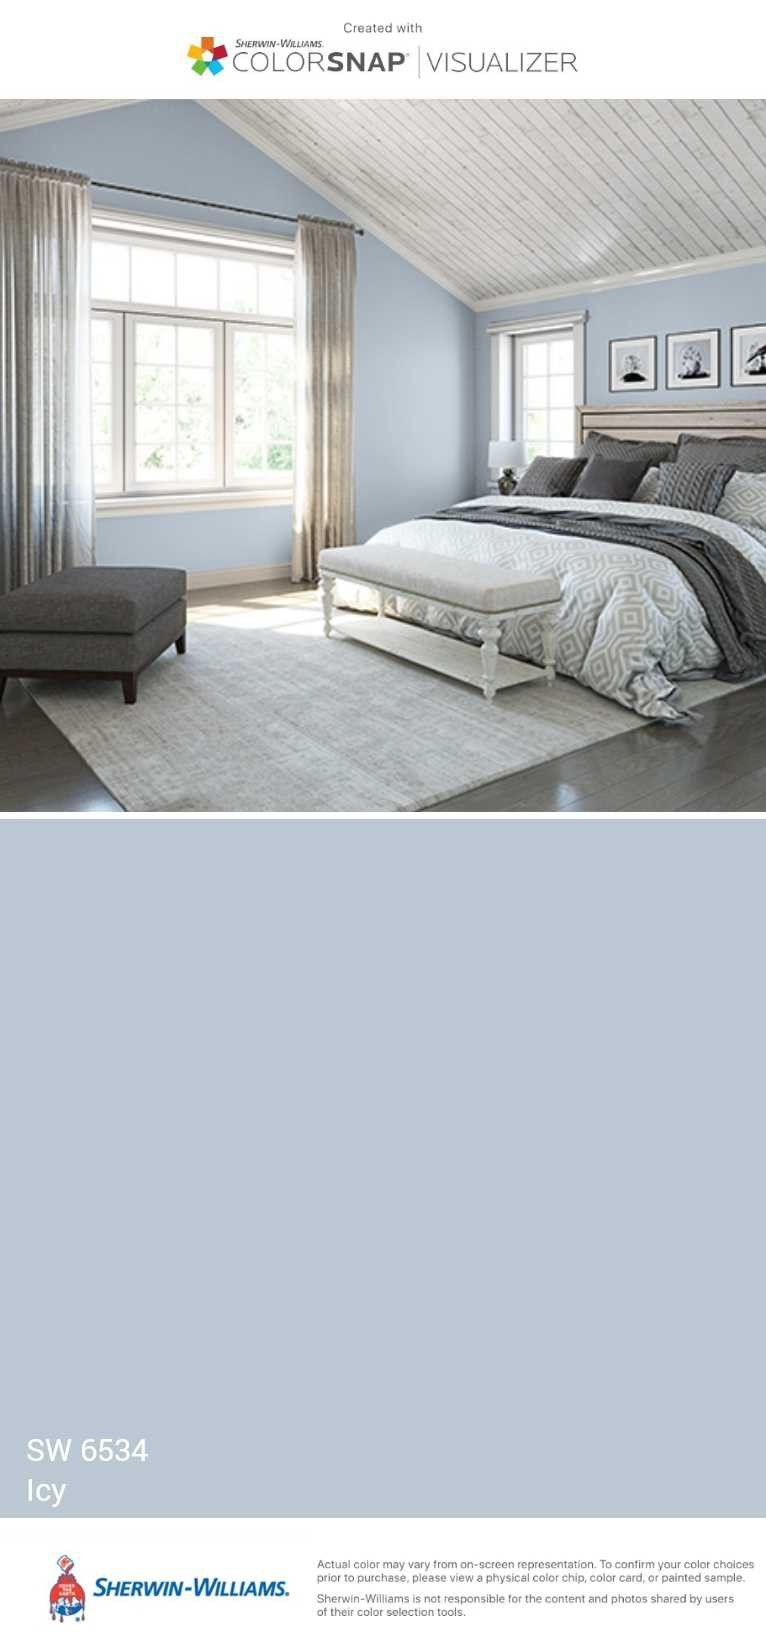 Sherwin Williams 6534 Icy Bedroom Wall Colors Bedroom Colors Bedroom Paint Colors